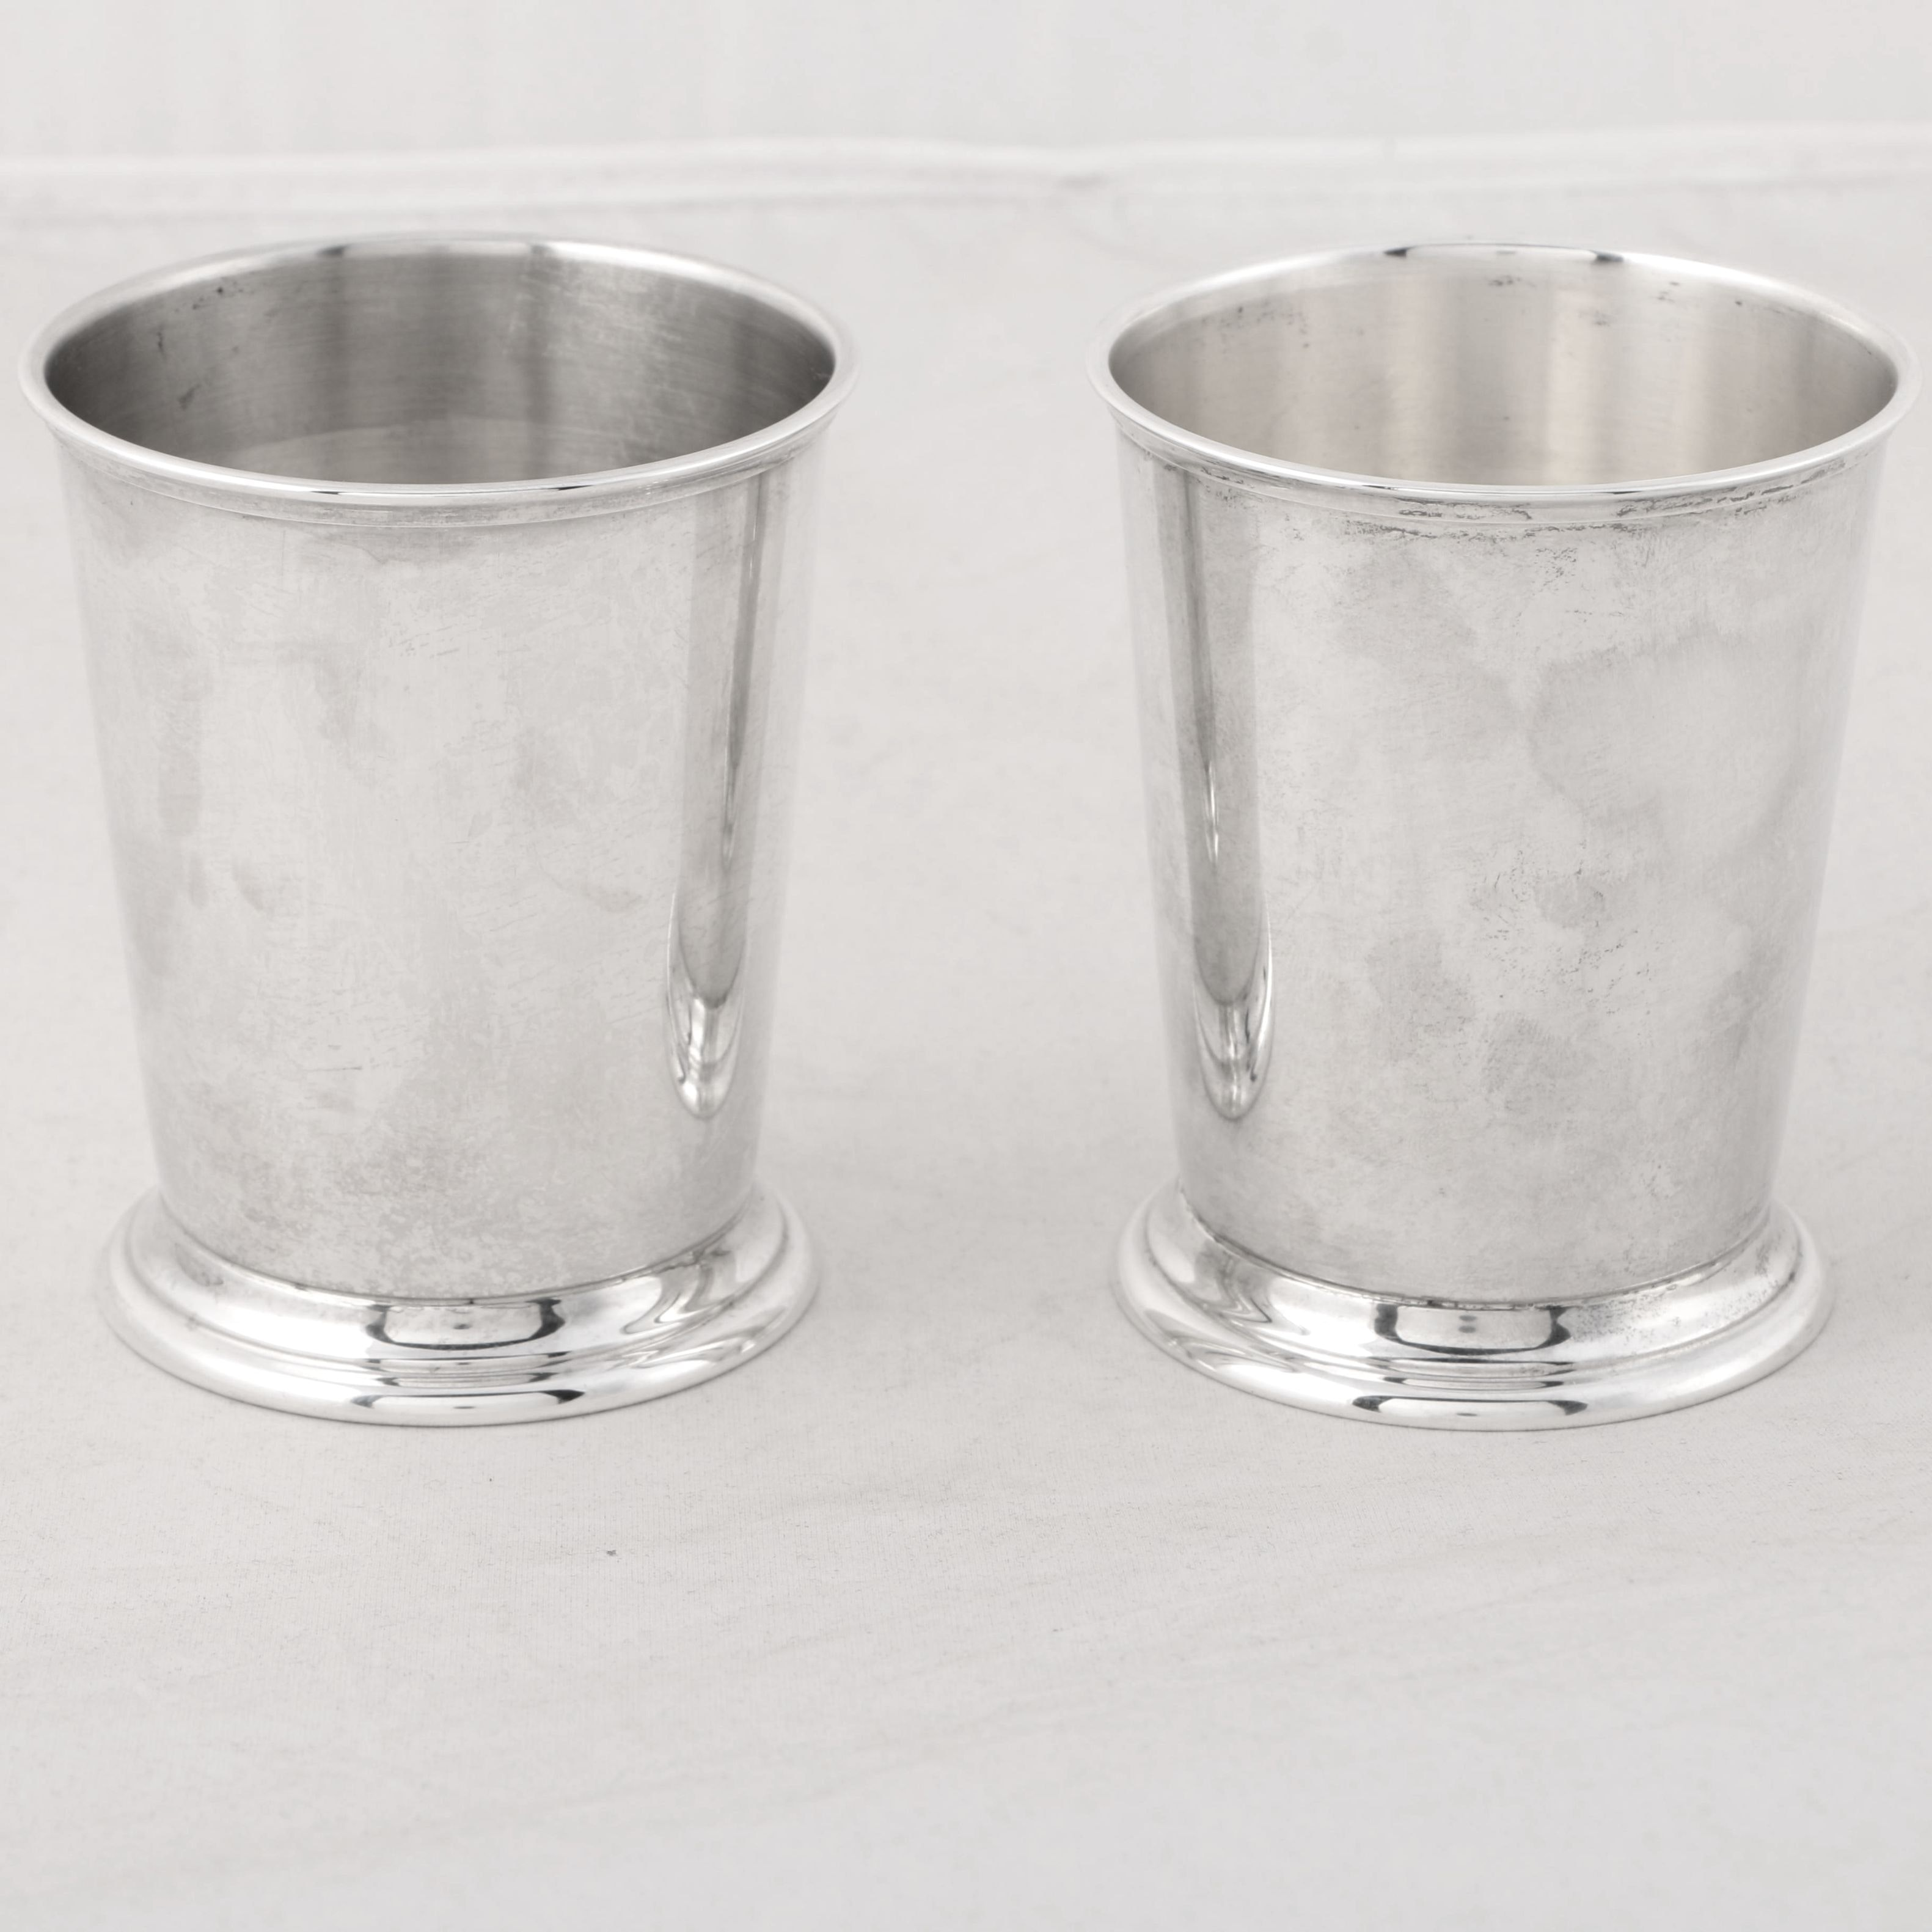 Towle Silversmiths Sterling Silver Julep Cups